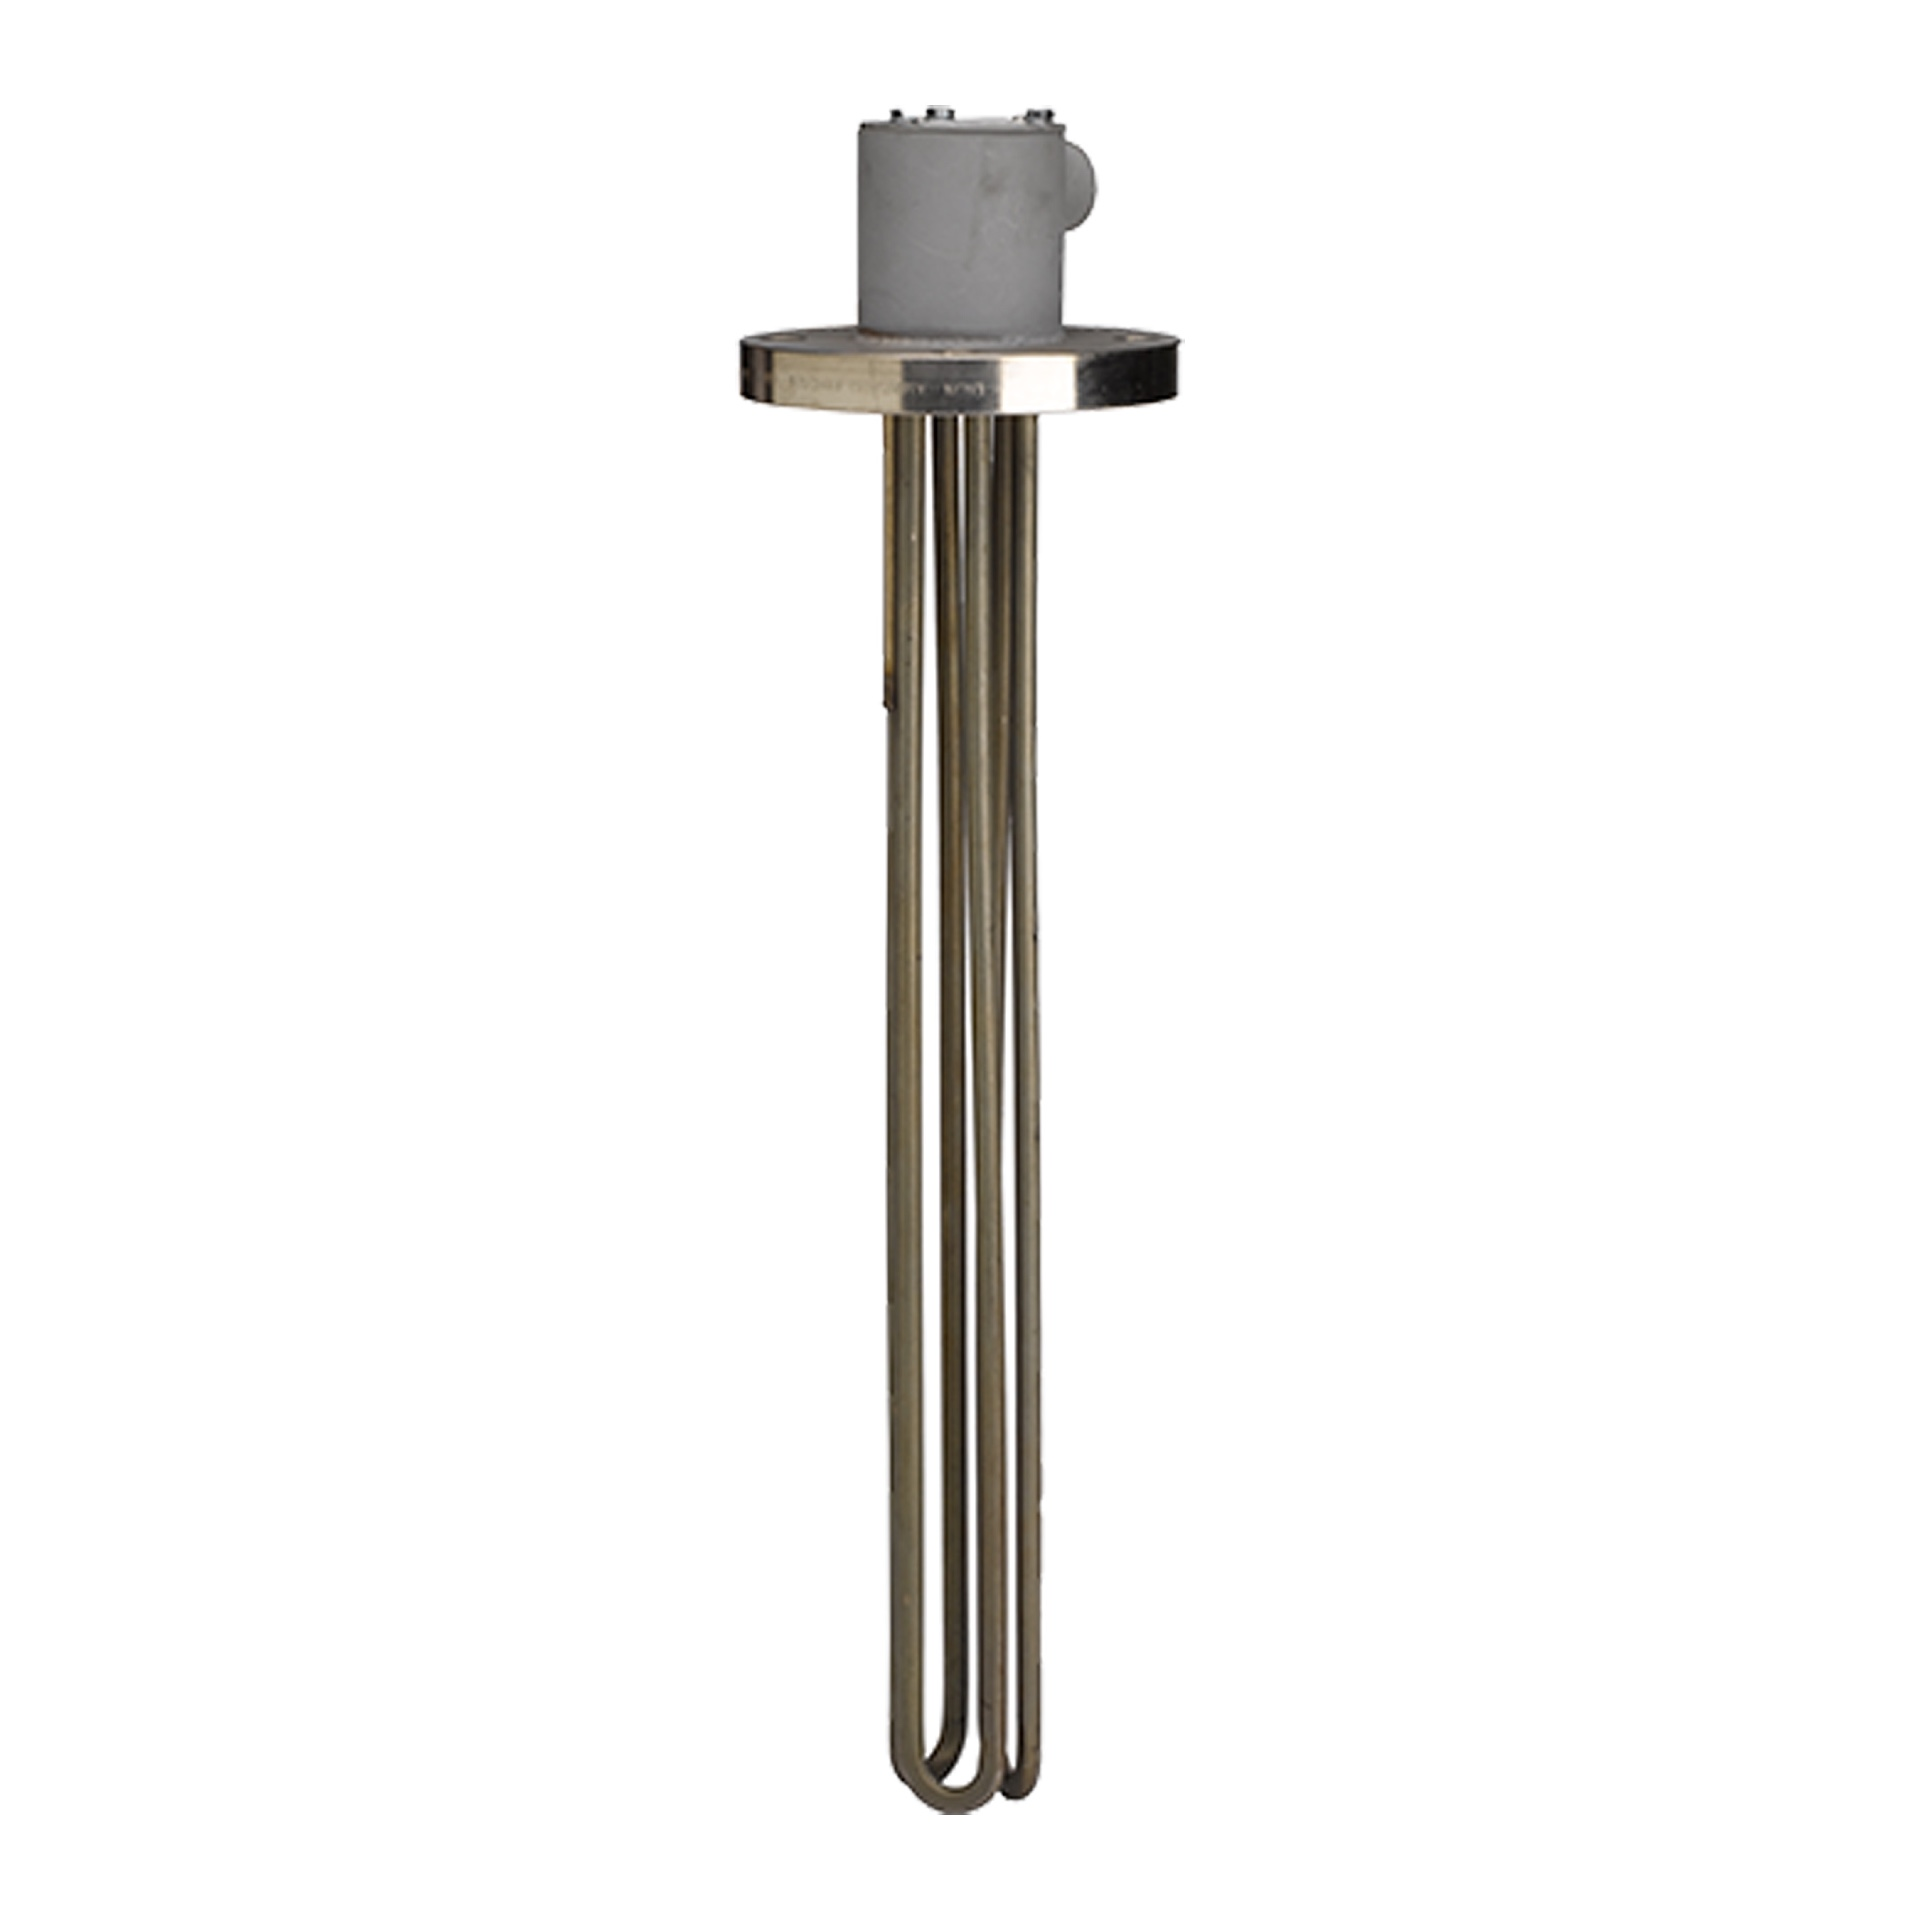 3''-5''-6'' Flange Heaters -Tubular Flanged Immersion Heaters